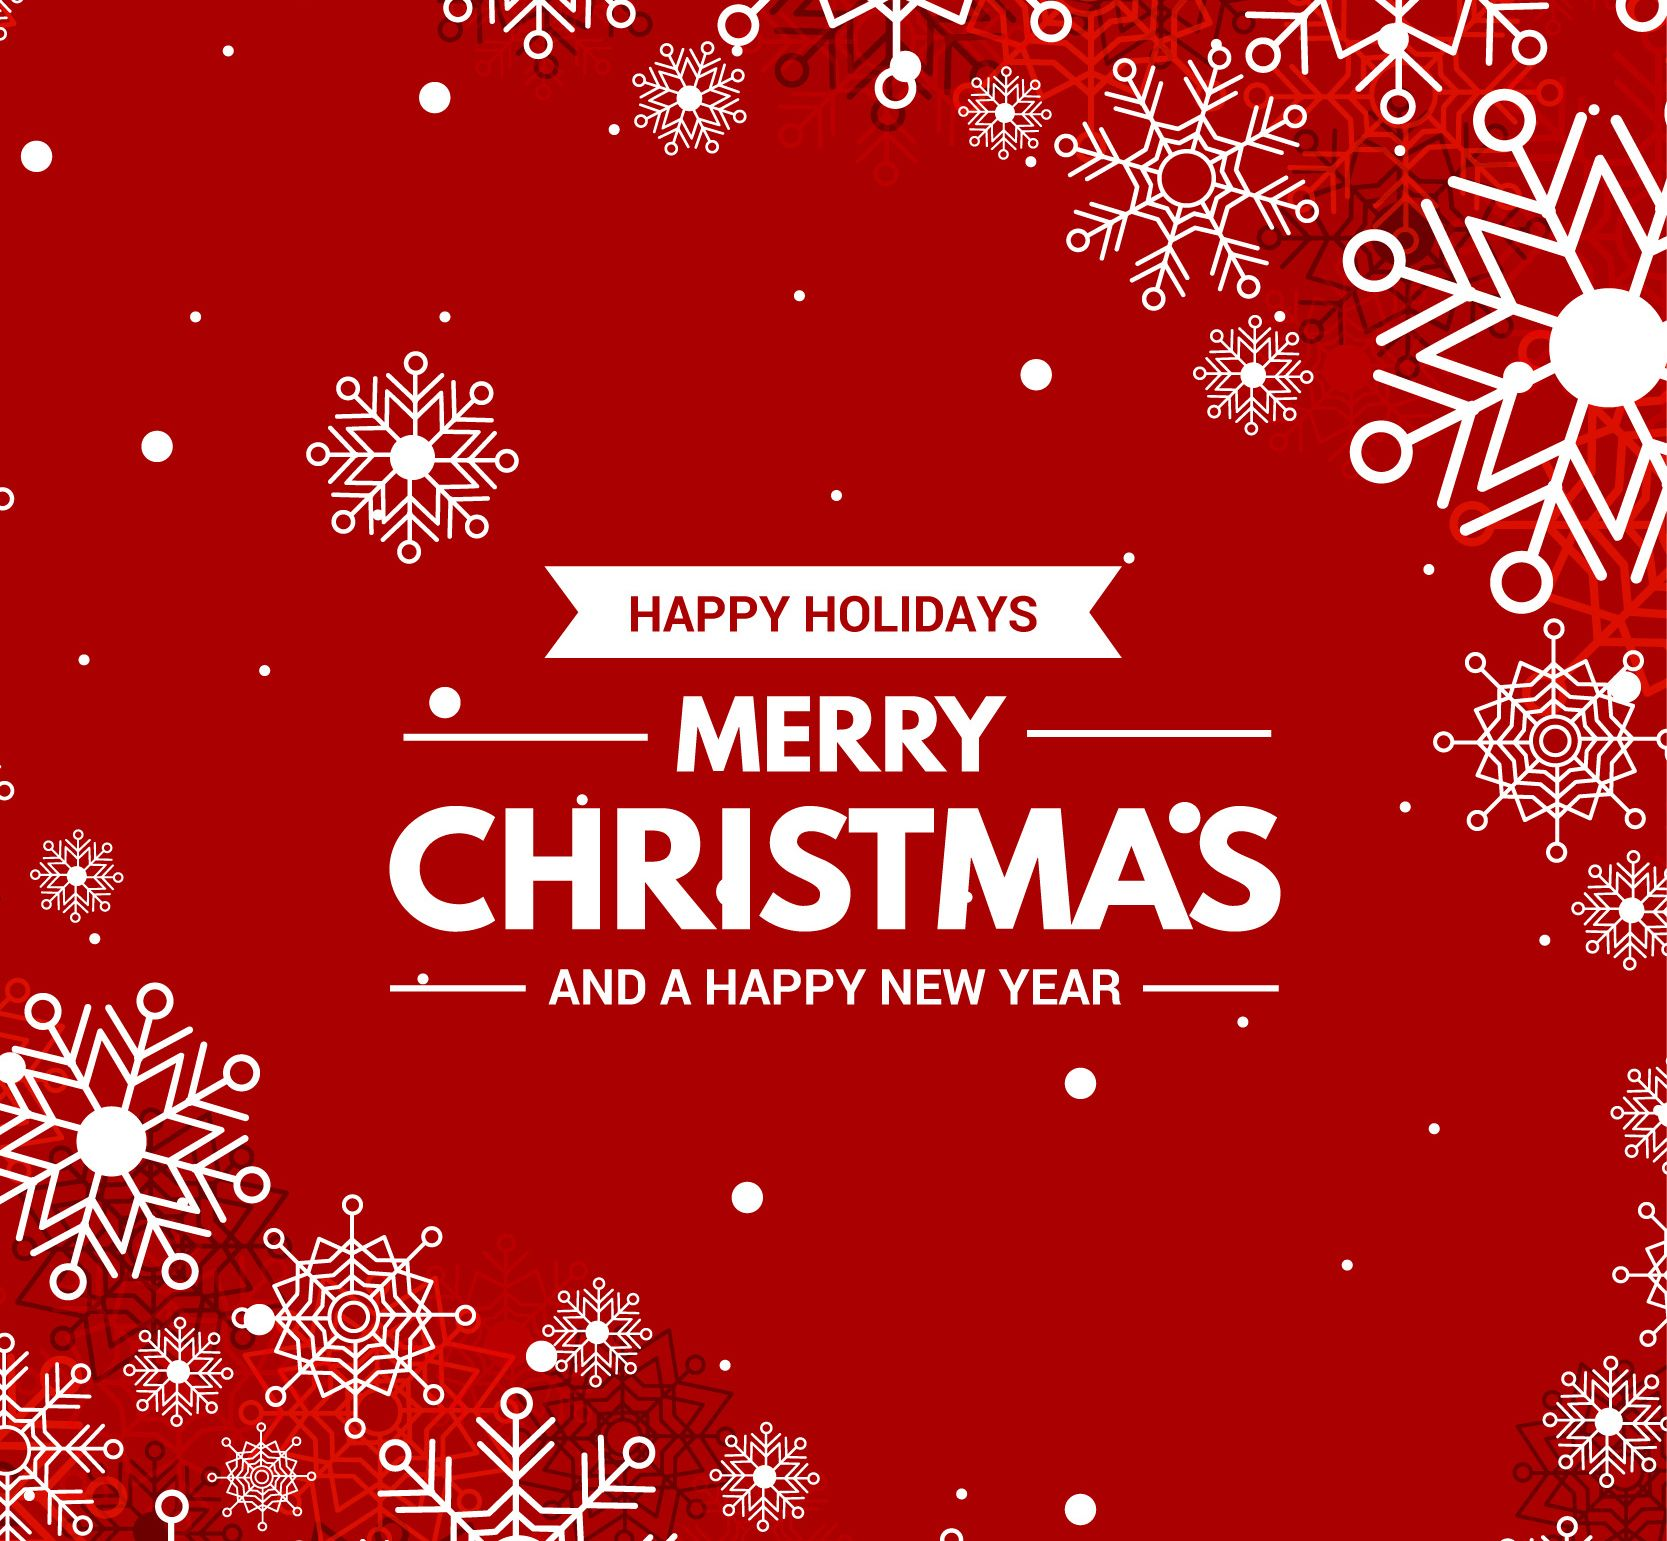 free christmas images free merry christmas images free christmas pictures free merry christmas pictures free merry christmas pictures merry christmas text free merry christmas images